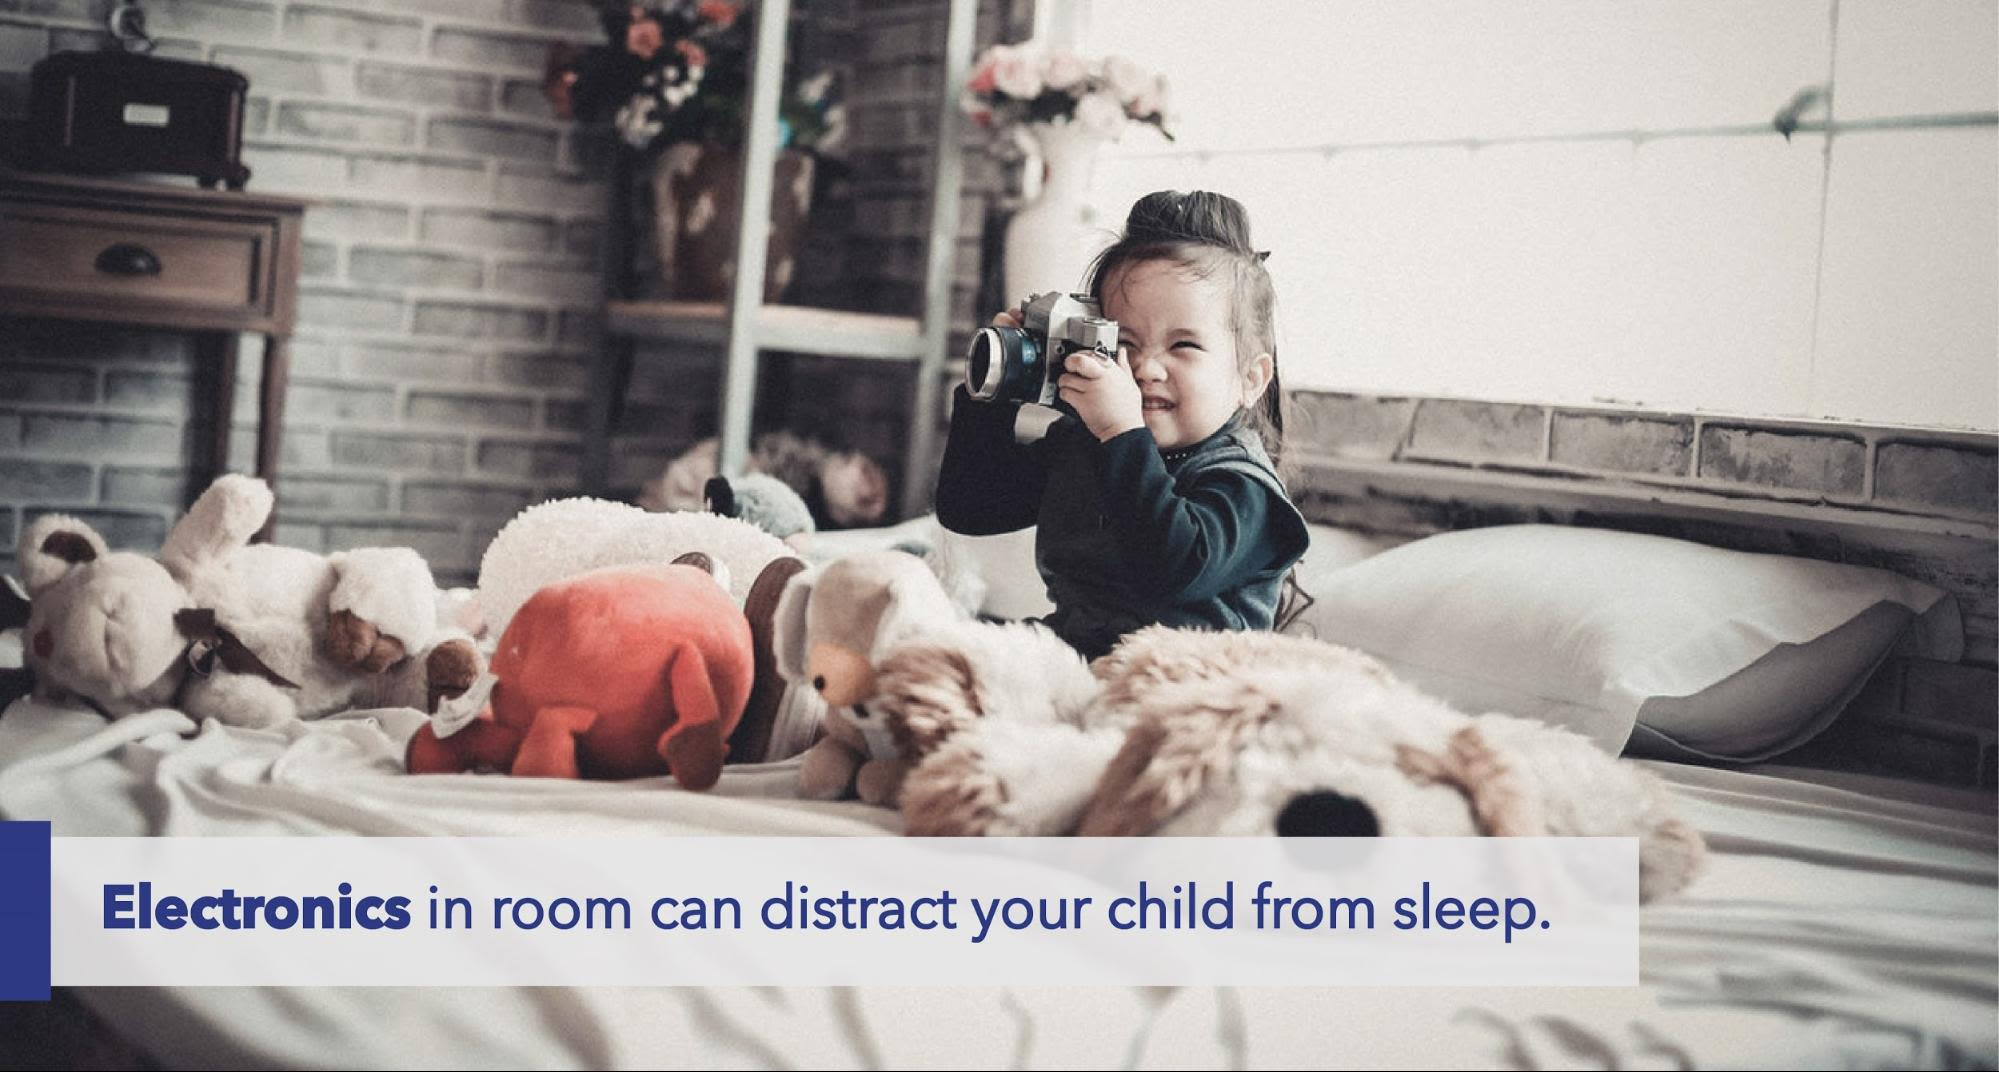 Electronics in room can distract your child from sleep.